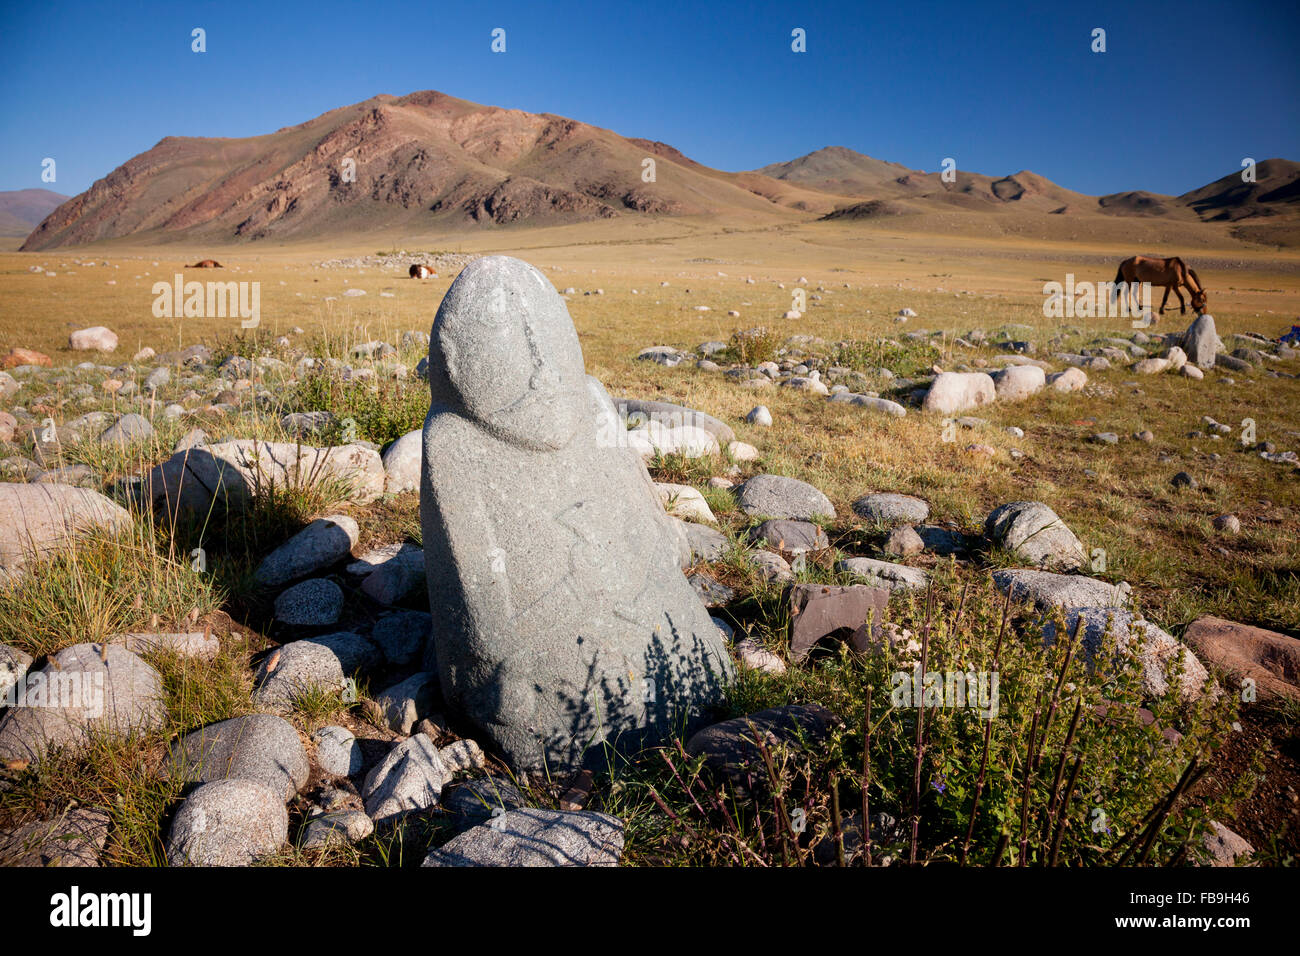 A thousands of year old Turkic grave stone in Kharkhiraa Turgen National Park, Mongolia. - Stock Image